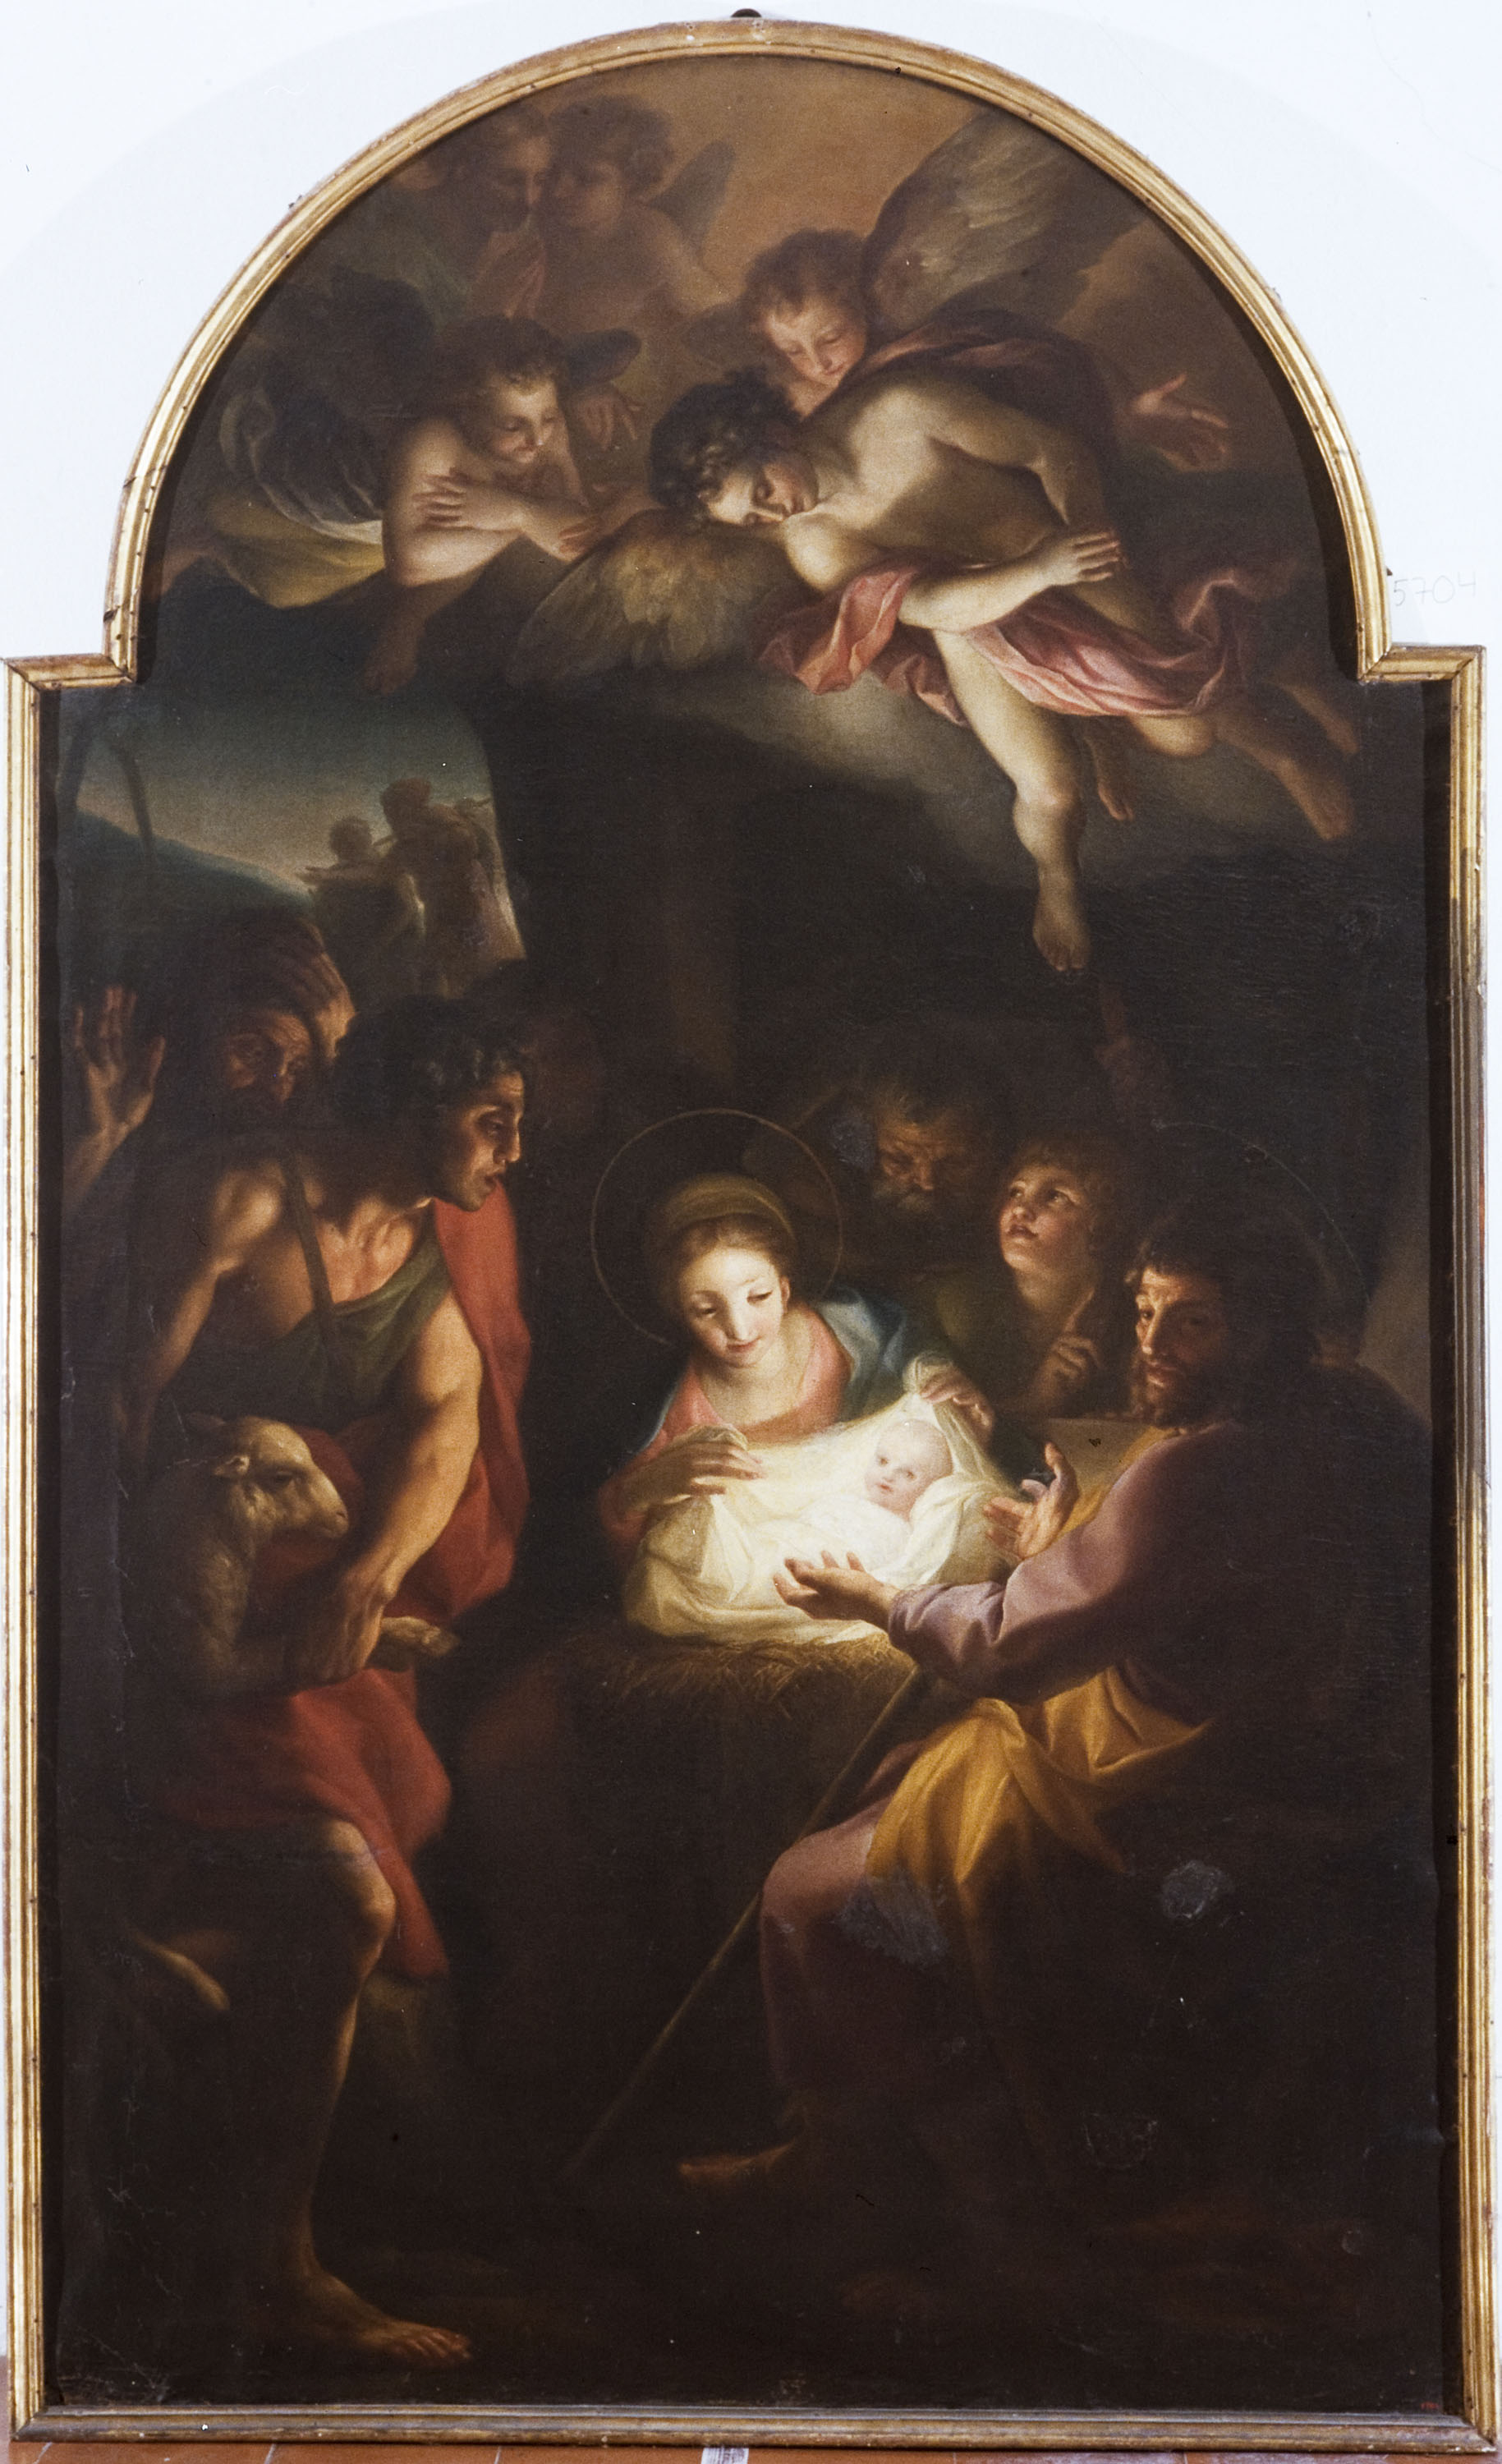 Carlo Giuseppe Ratti - Adoration of the Shepherds - 1773